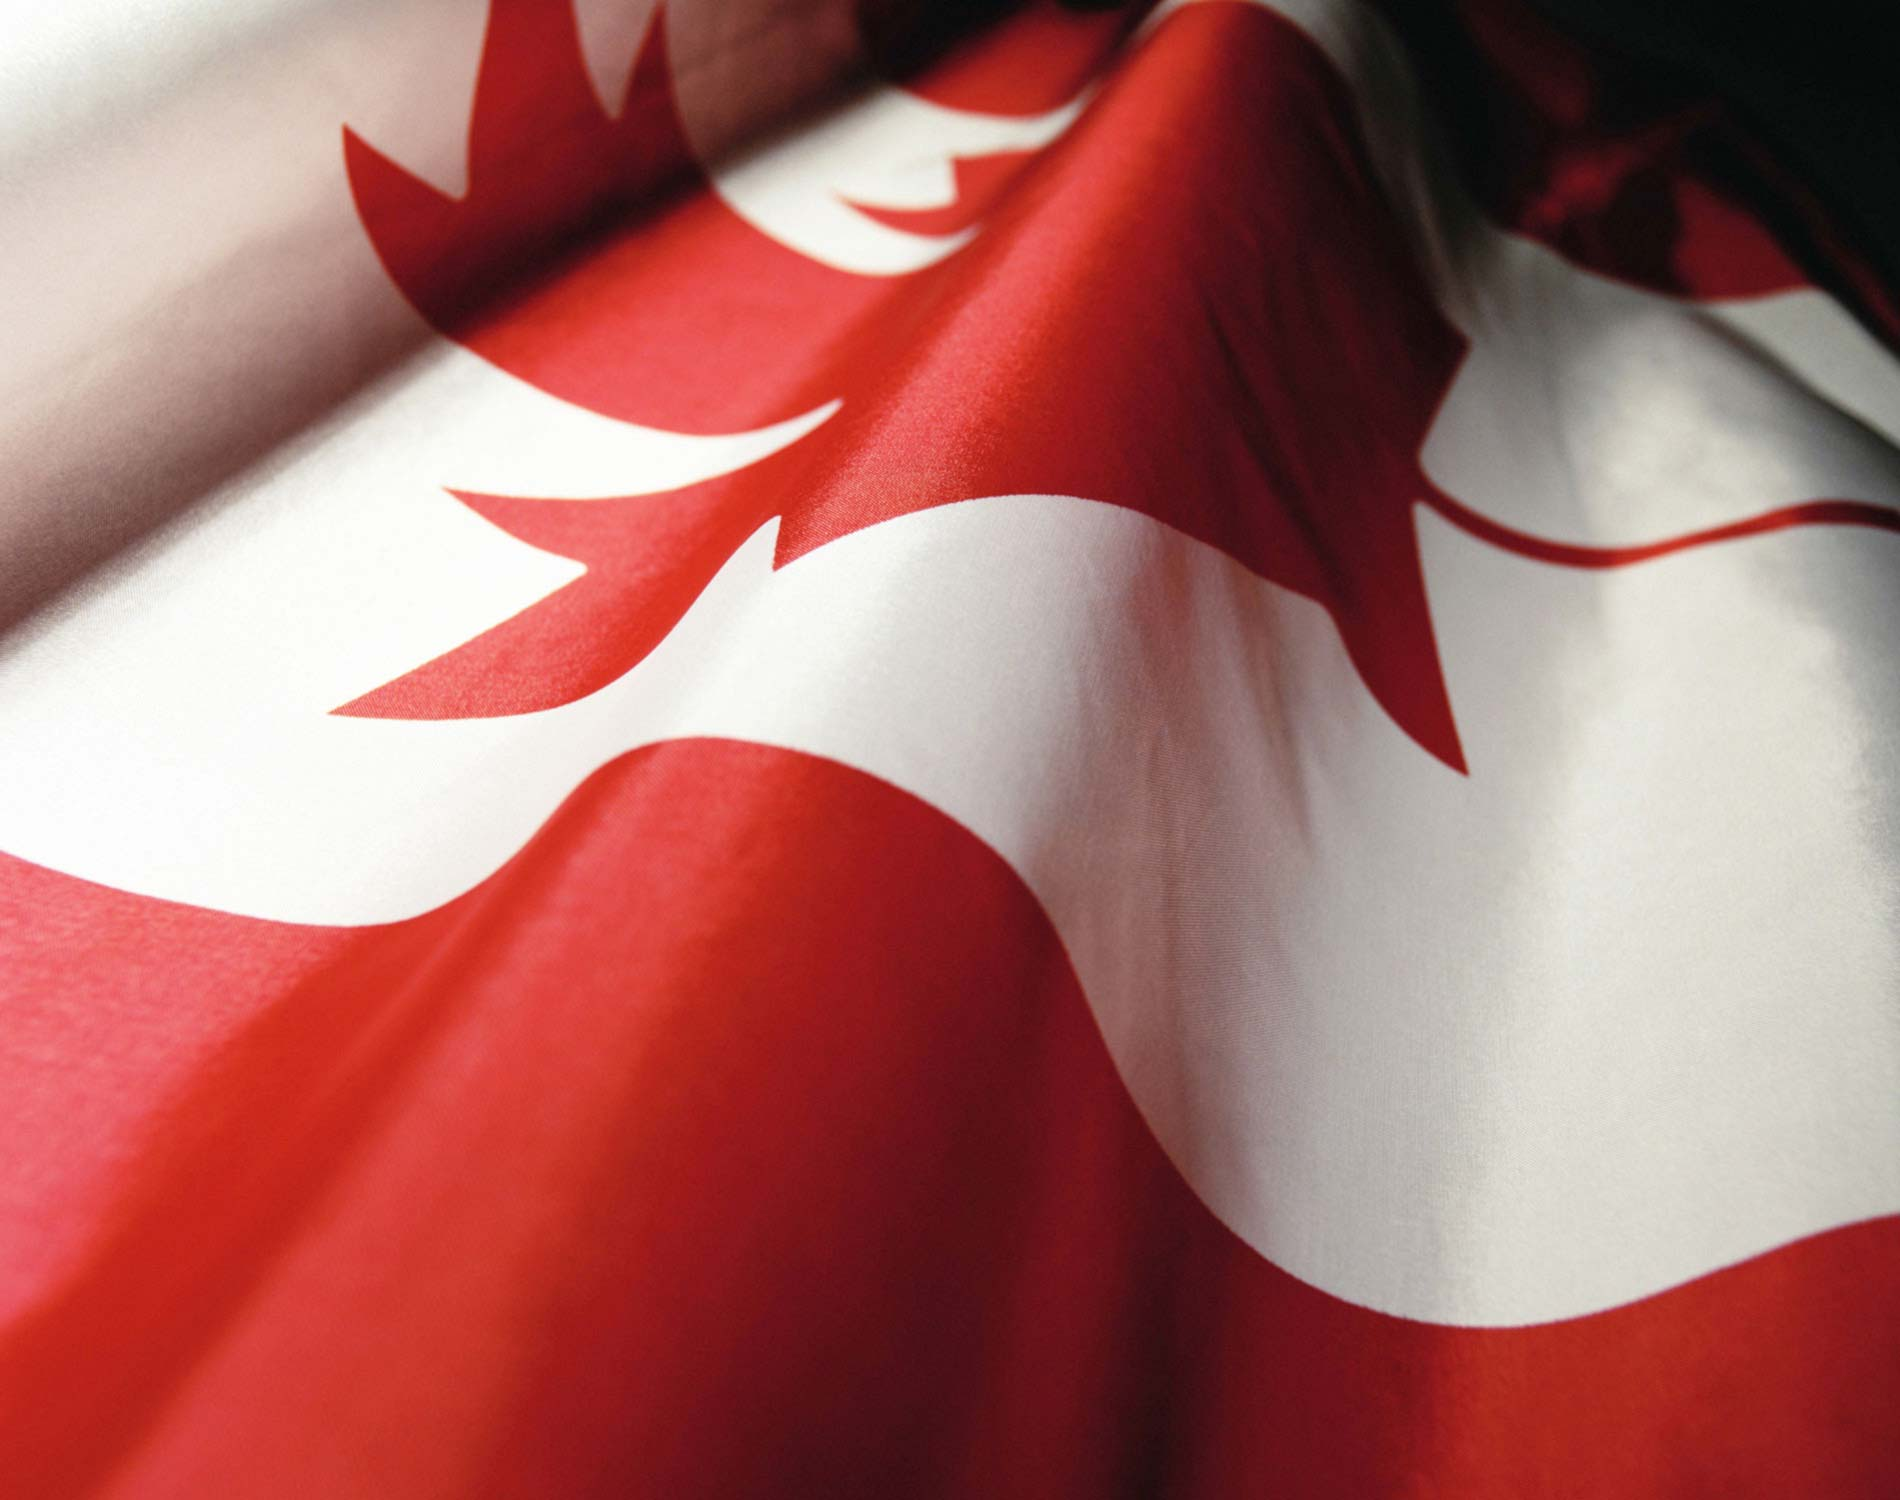 /-/media/images/website/background-images/regions/canada/canada-flag.ashx